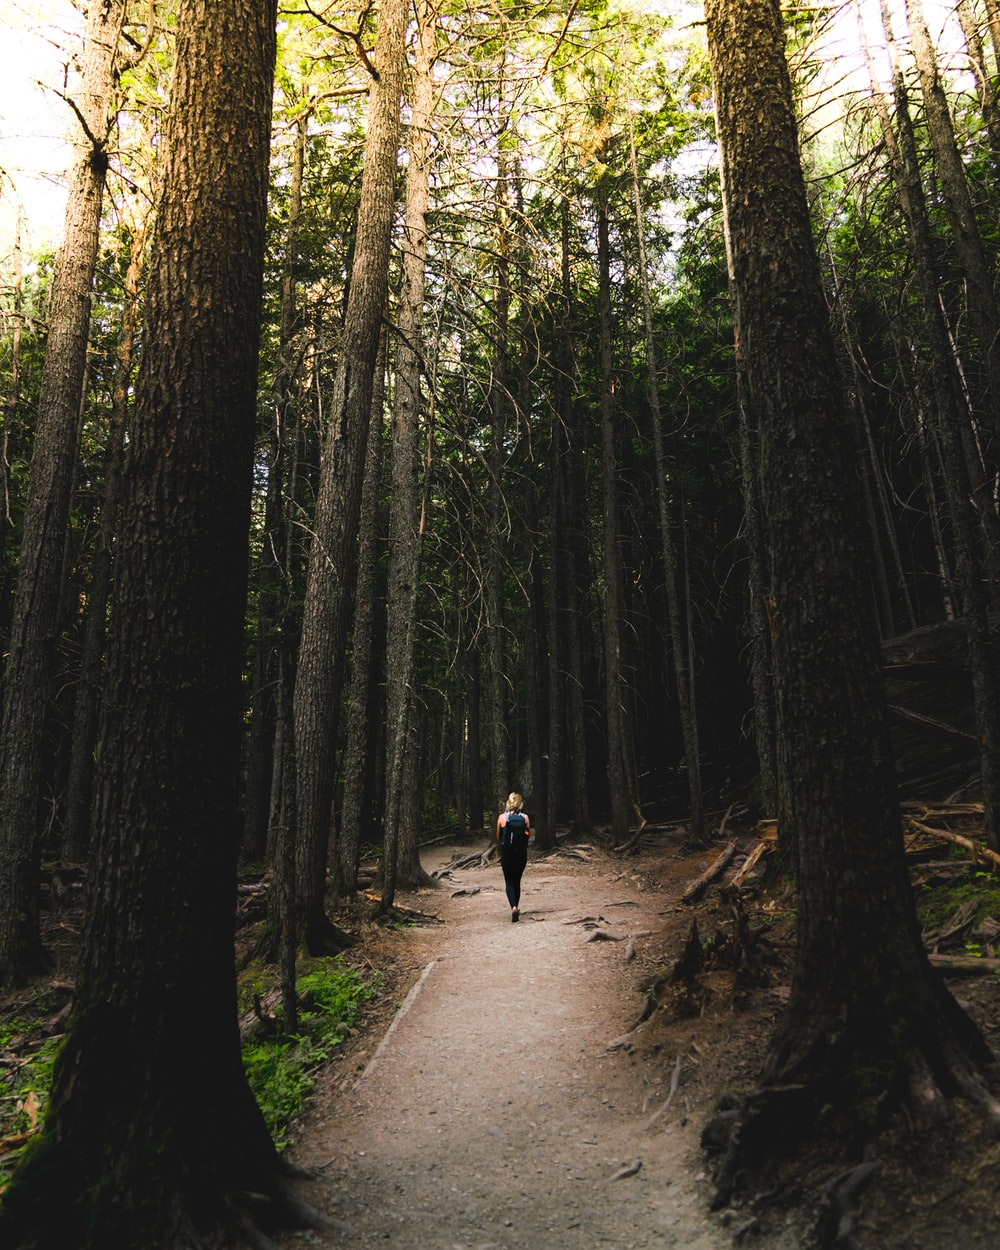 person walking surrounded by trees